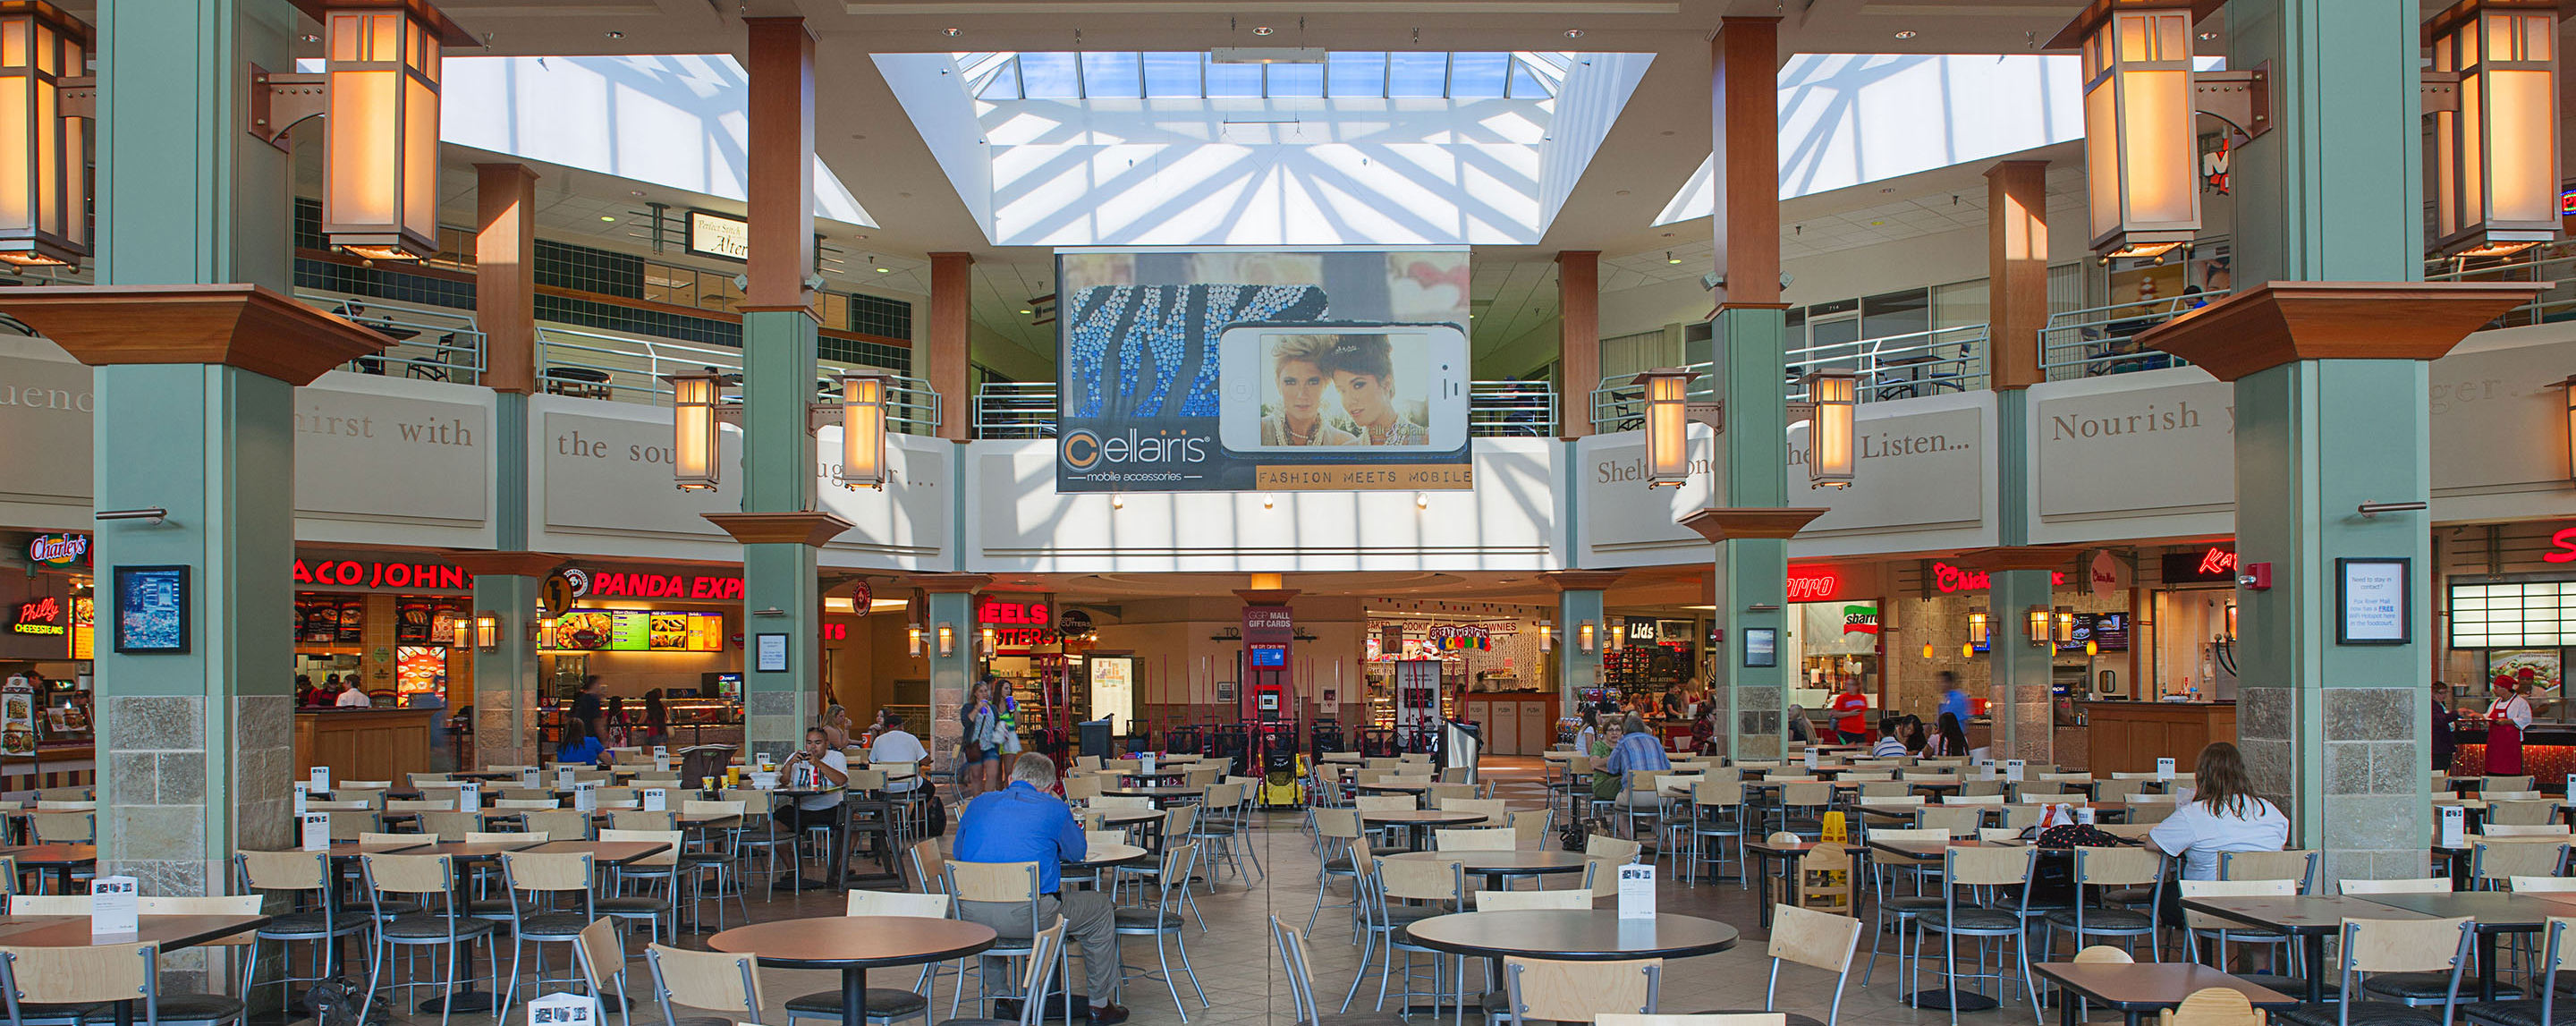 Inside the Fox River Mall food court, shoppers sit, eat, and relax in the common area filled with tables and chairs.